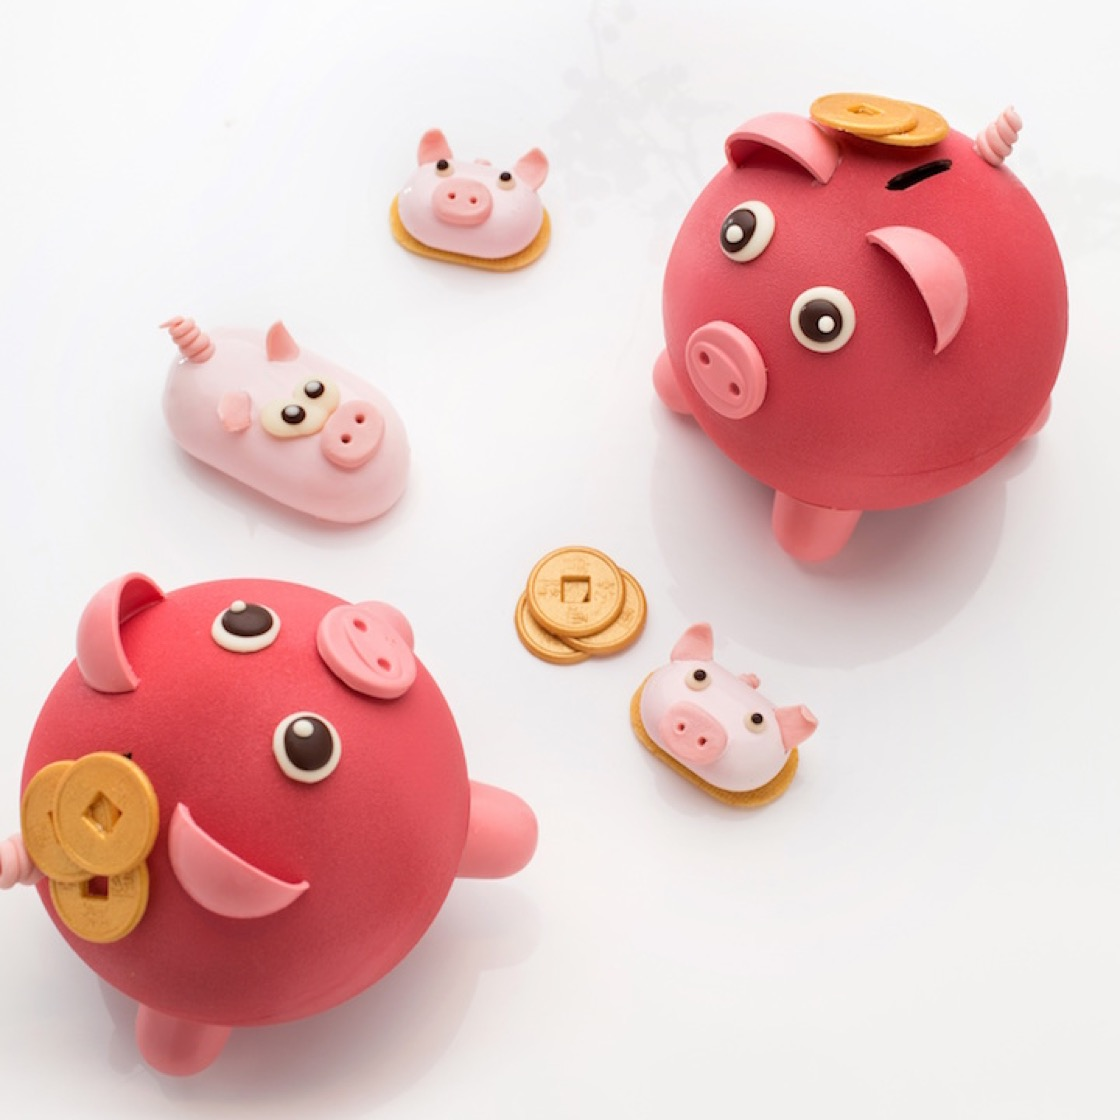 Piggy Bank from Baguette Bakery (Pic: Grand Hyatt Taipei)